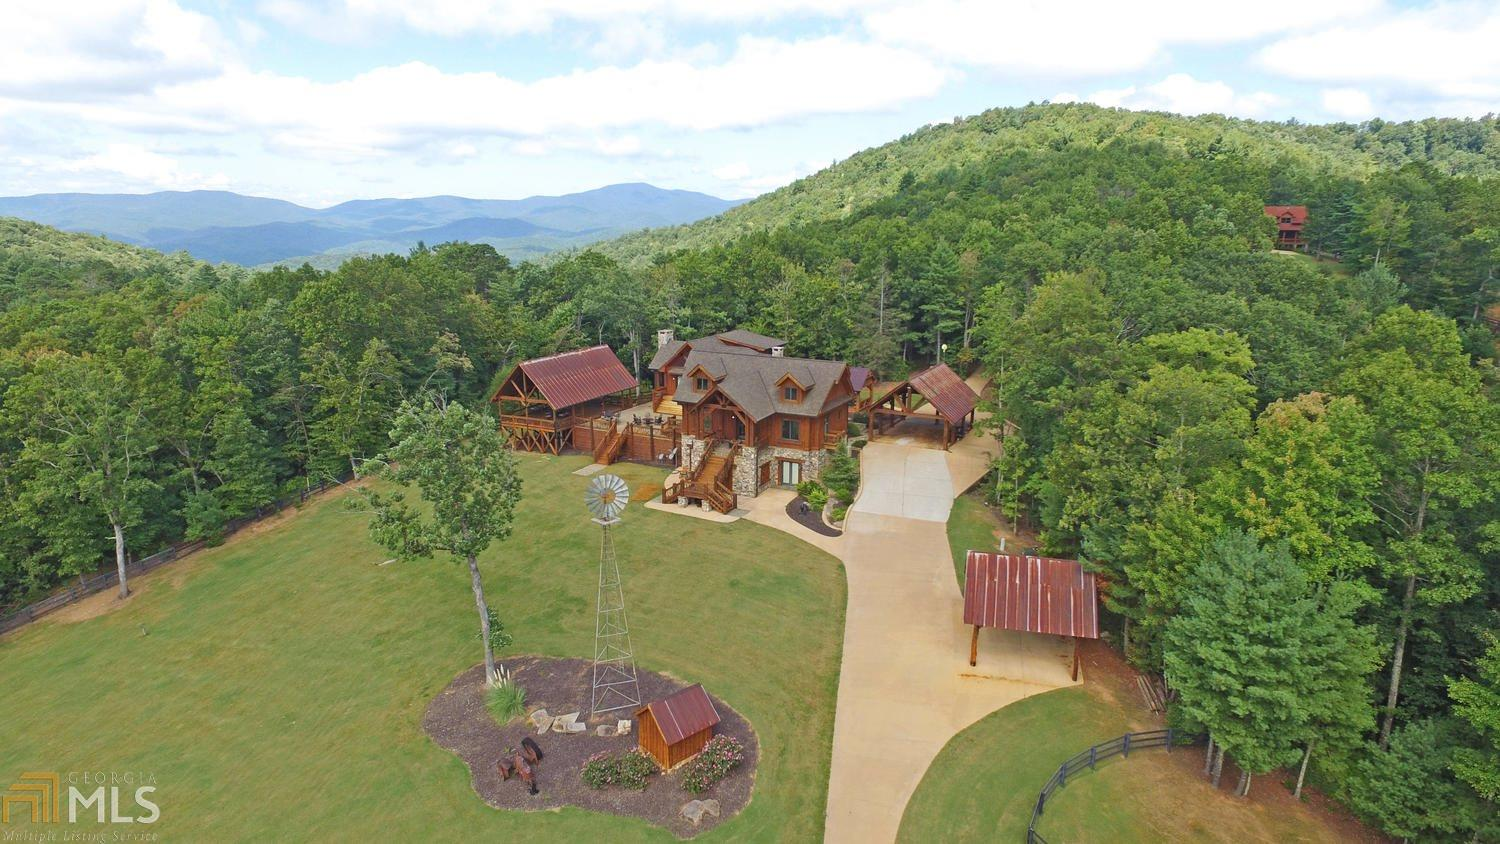 Additional photo for property listing at 3051 Rice Cabin Overlook Rd 3051 Rice Cabin Overlook Rd Helen, Georgia,30545 Hoa Kỳ